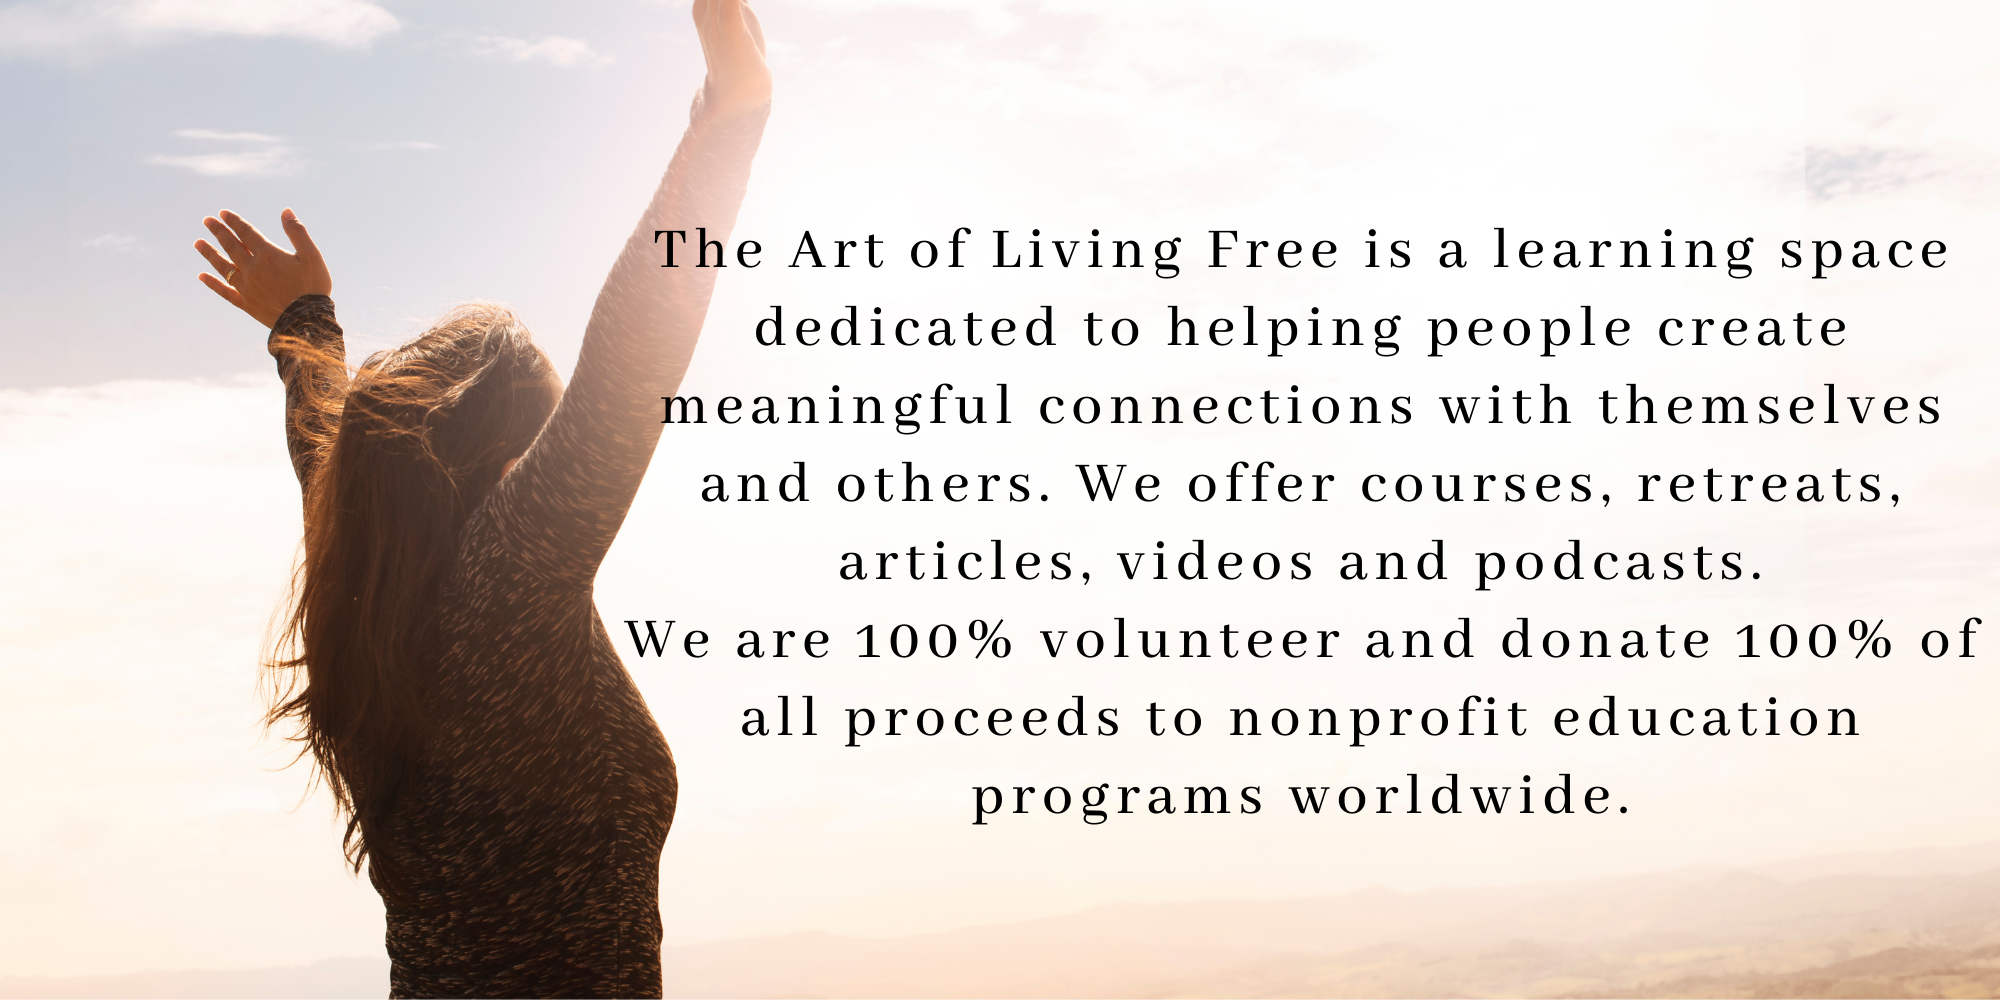 The Art of Living Free is a learning space dedicated to helping people create meaningful connections with themselves and others. We offer courses, retreats, articles, videos a